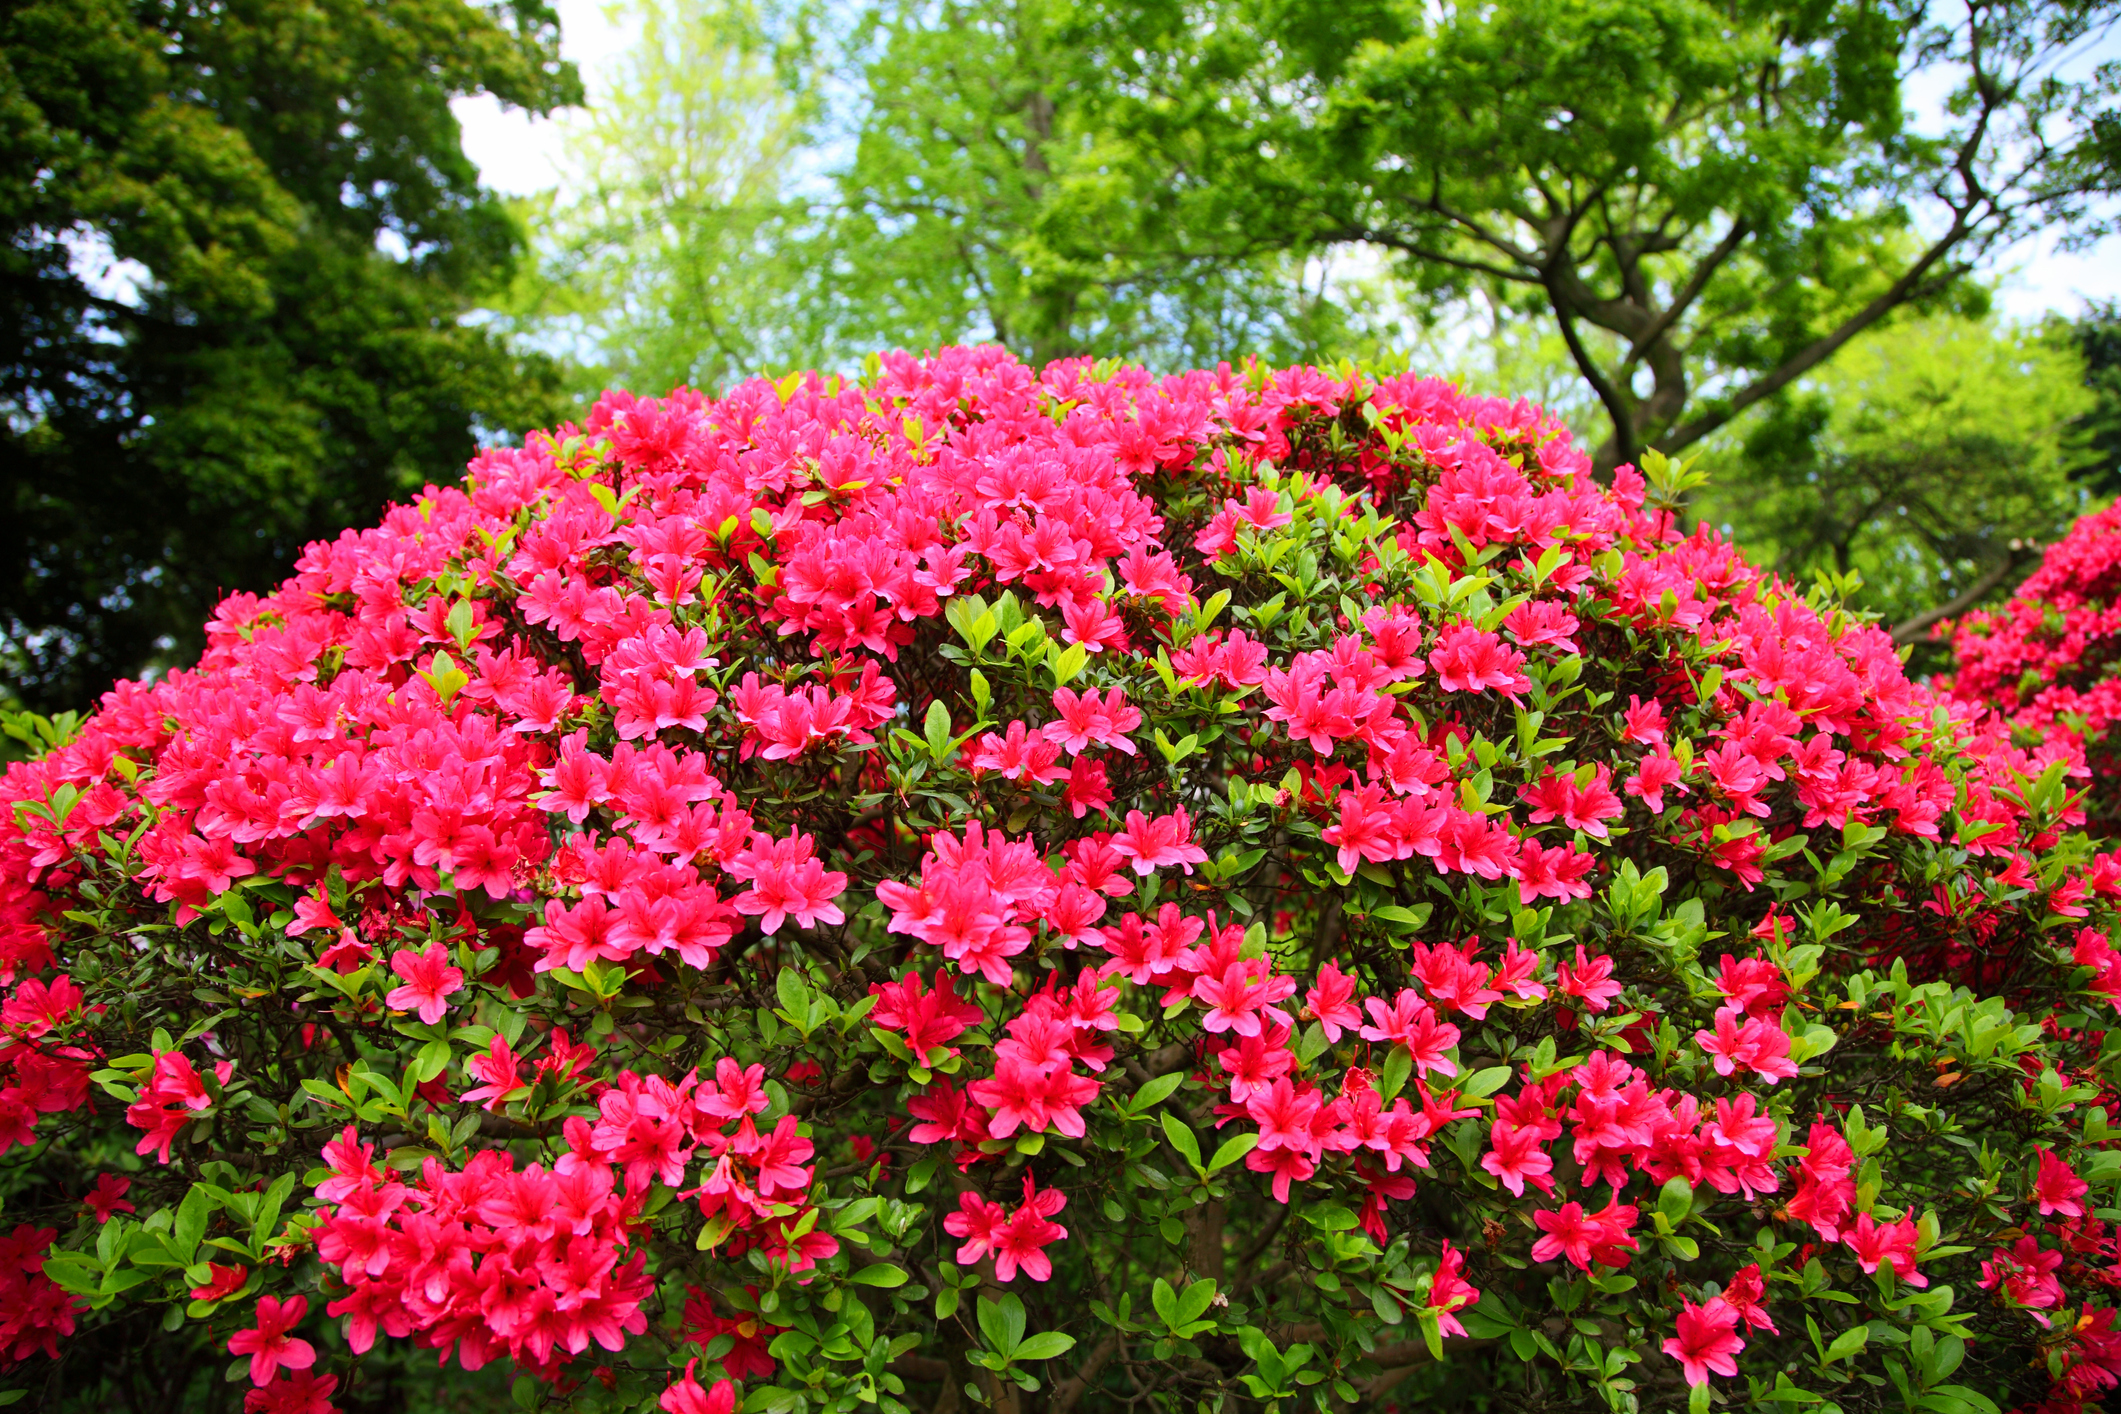 Azaleas are poisonous to cats and dogs. Picture: Hiro_photo_H/ Getty Images